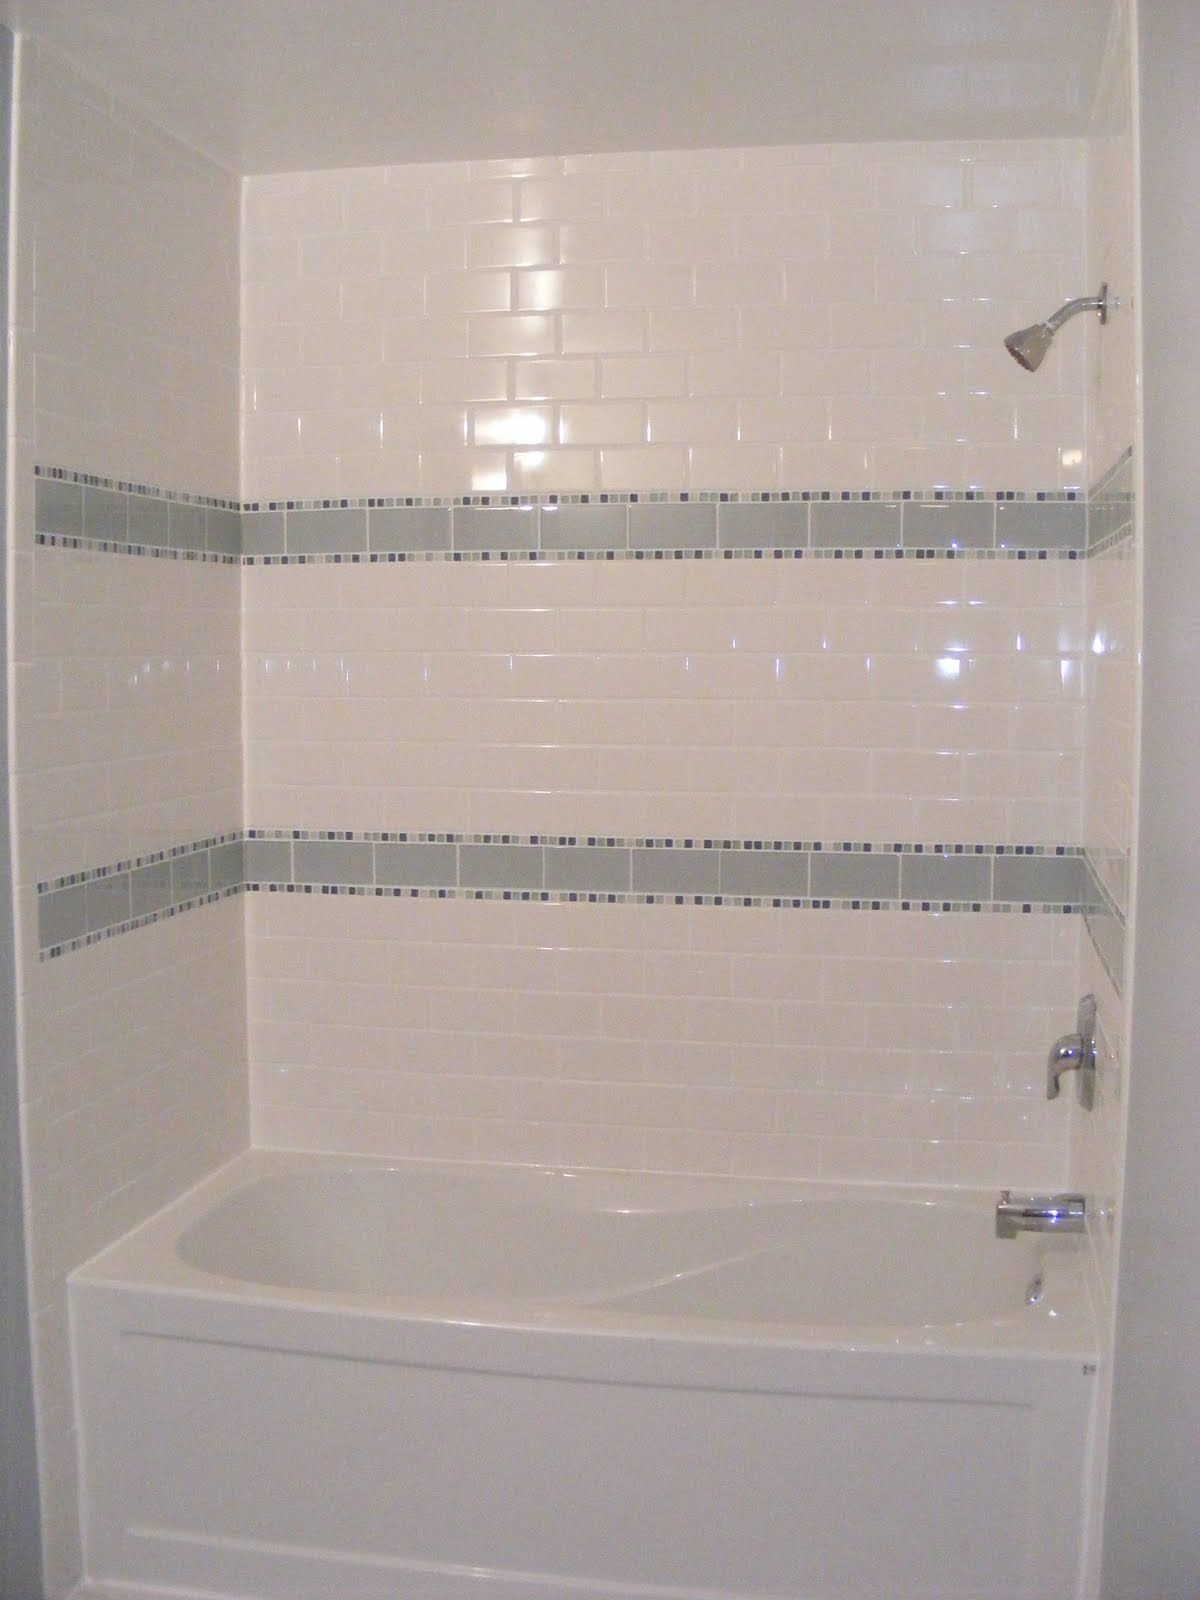 Bathroom Tile Ideas For Shower Walls ceramic require regular cleaning bathroom shower wall tiles